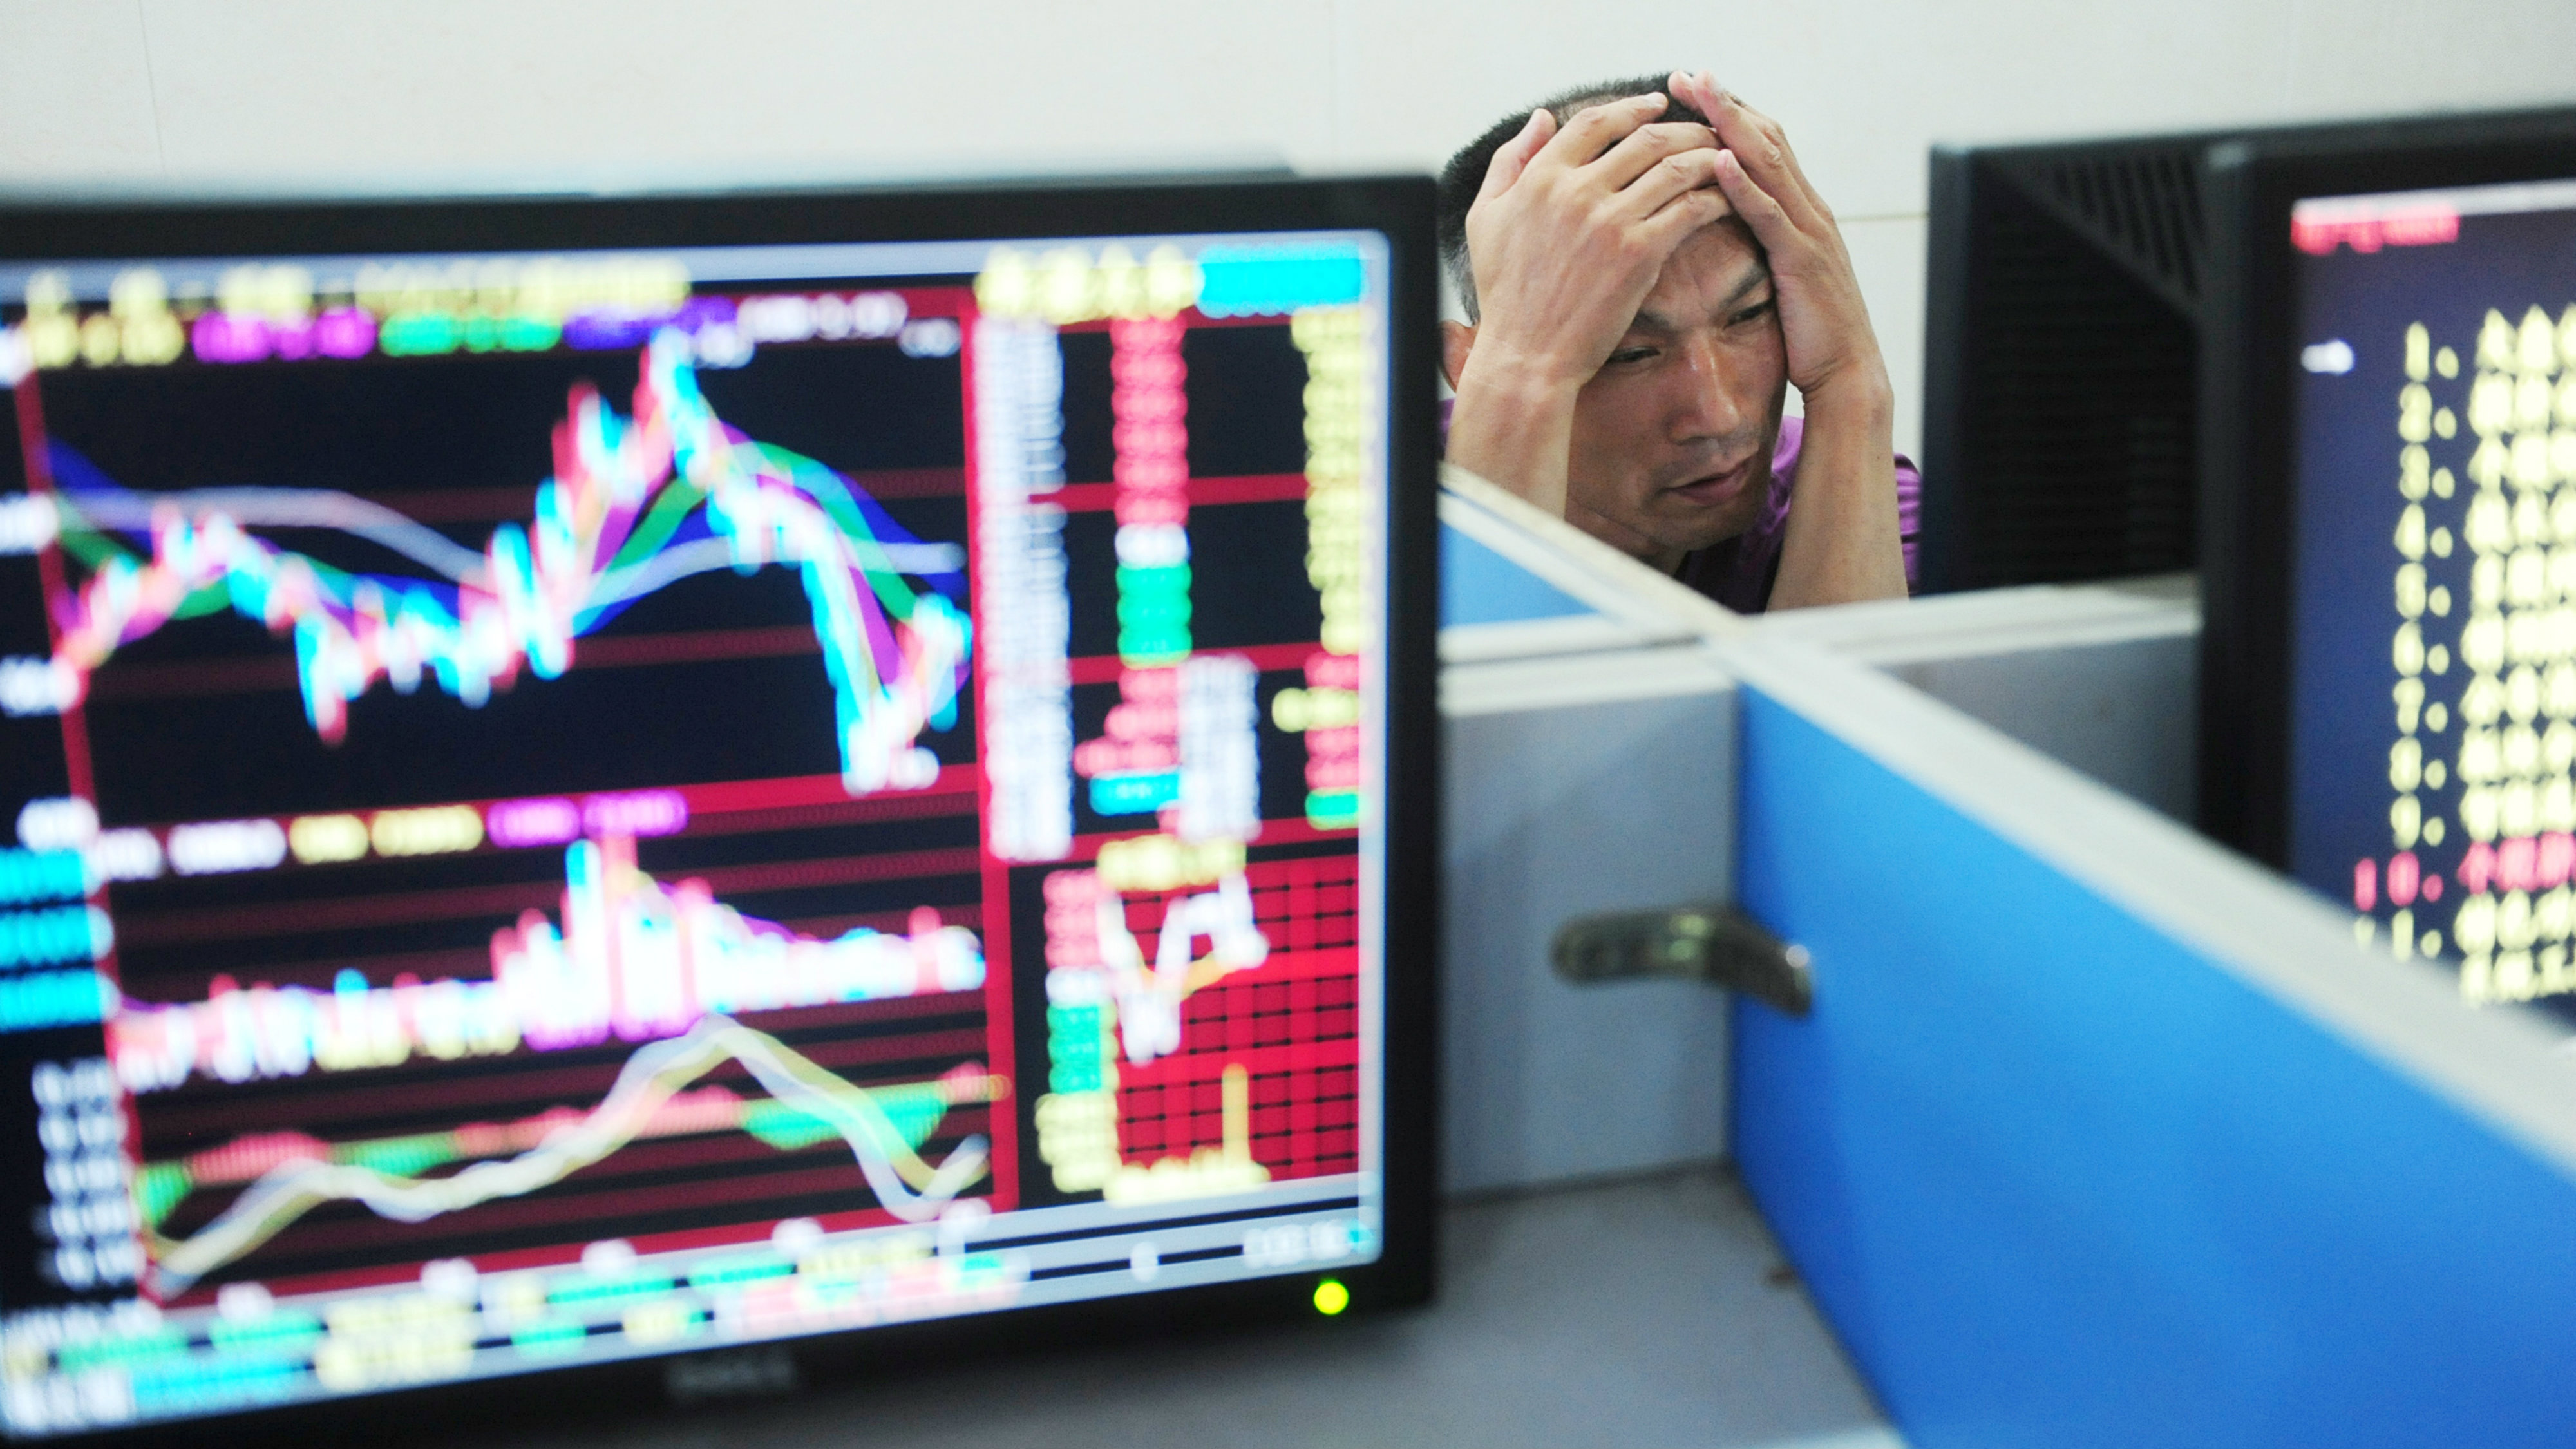 Trader confused by markets